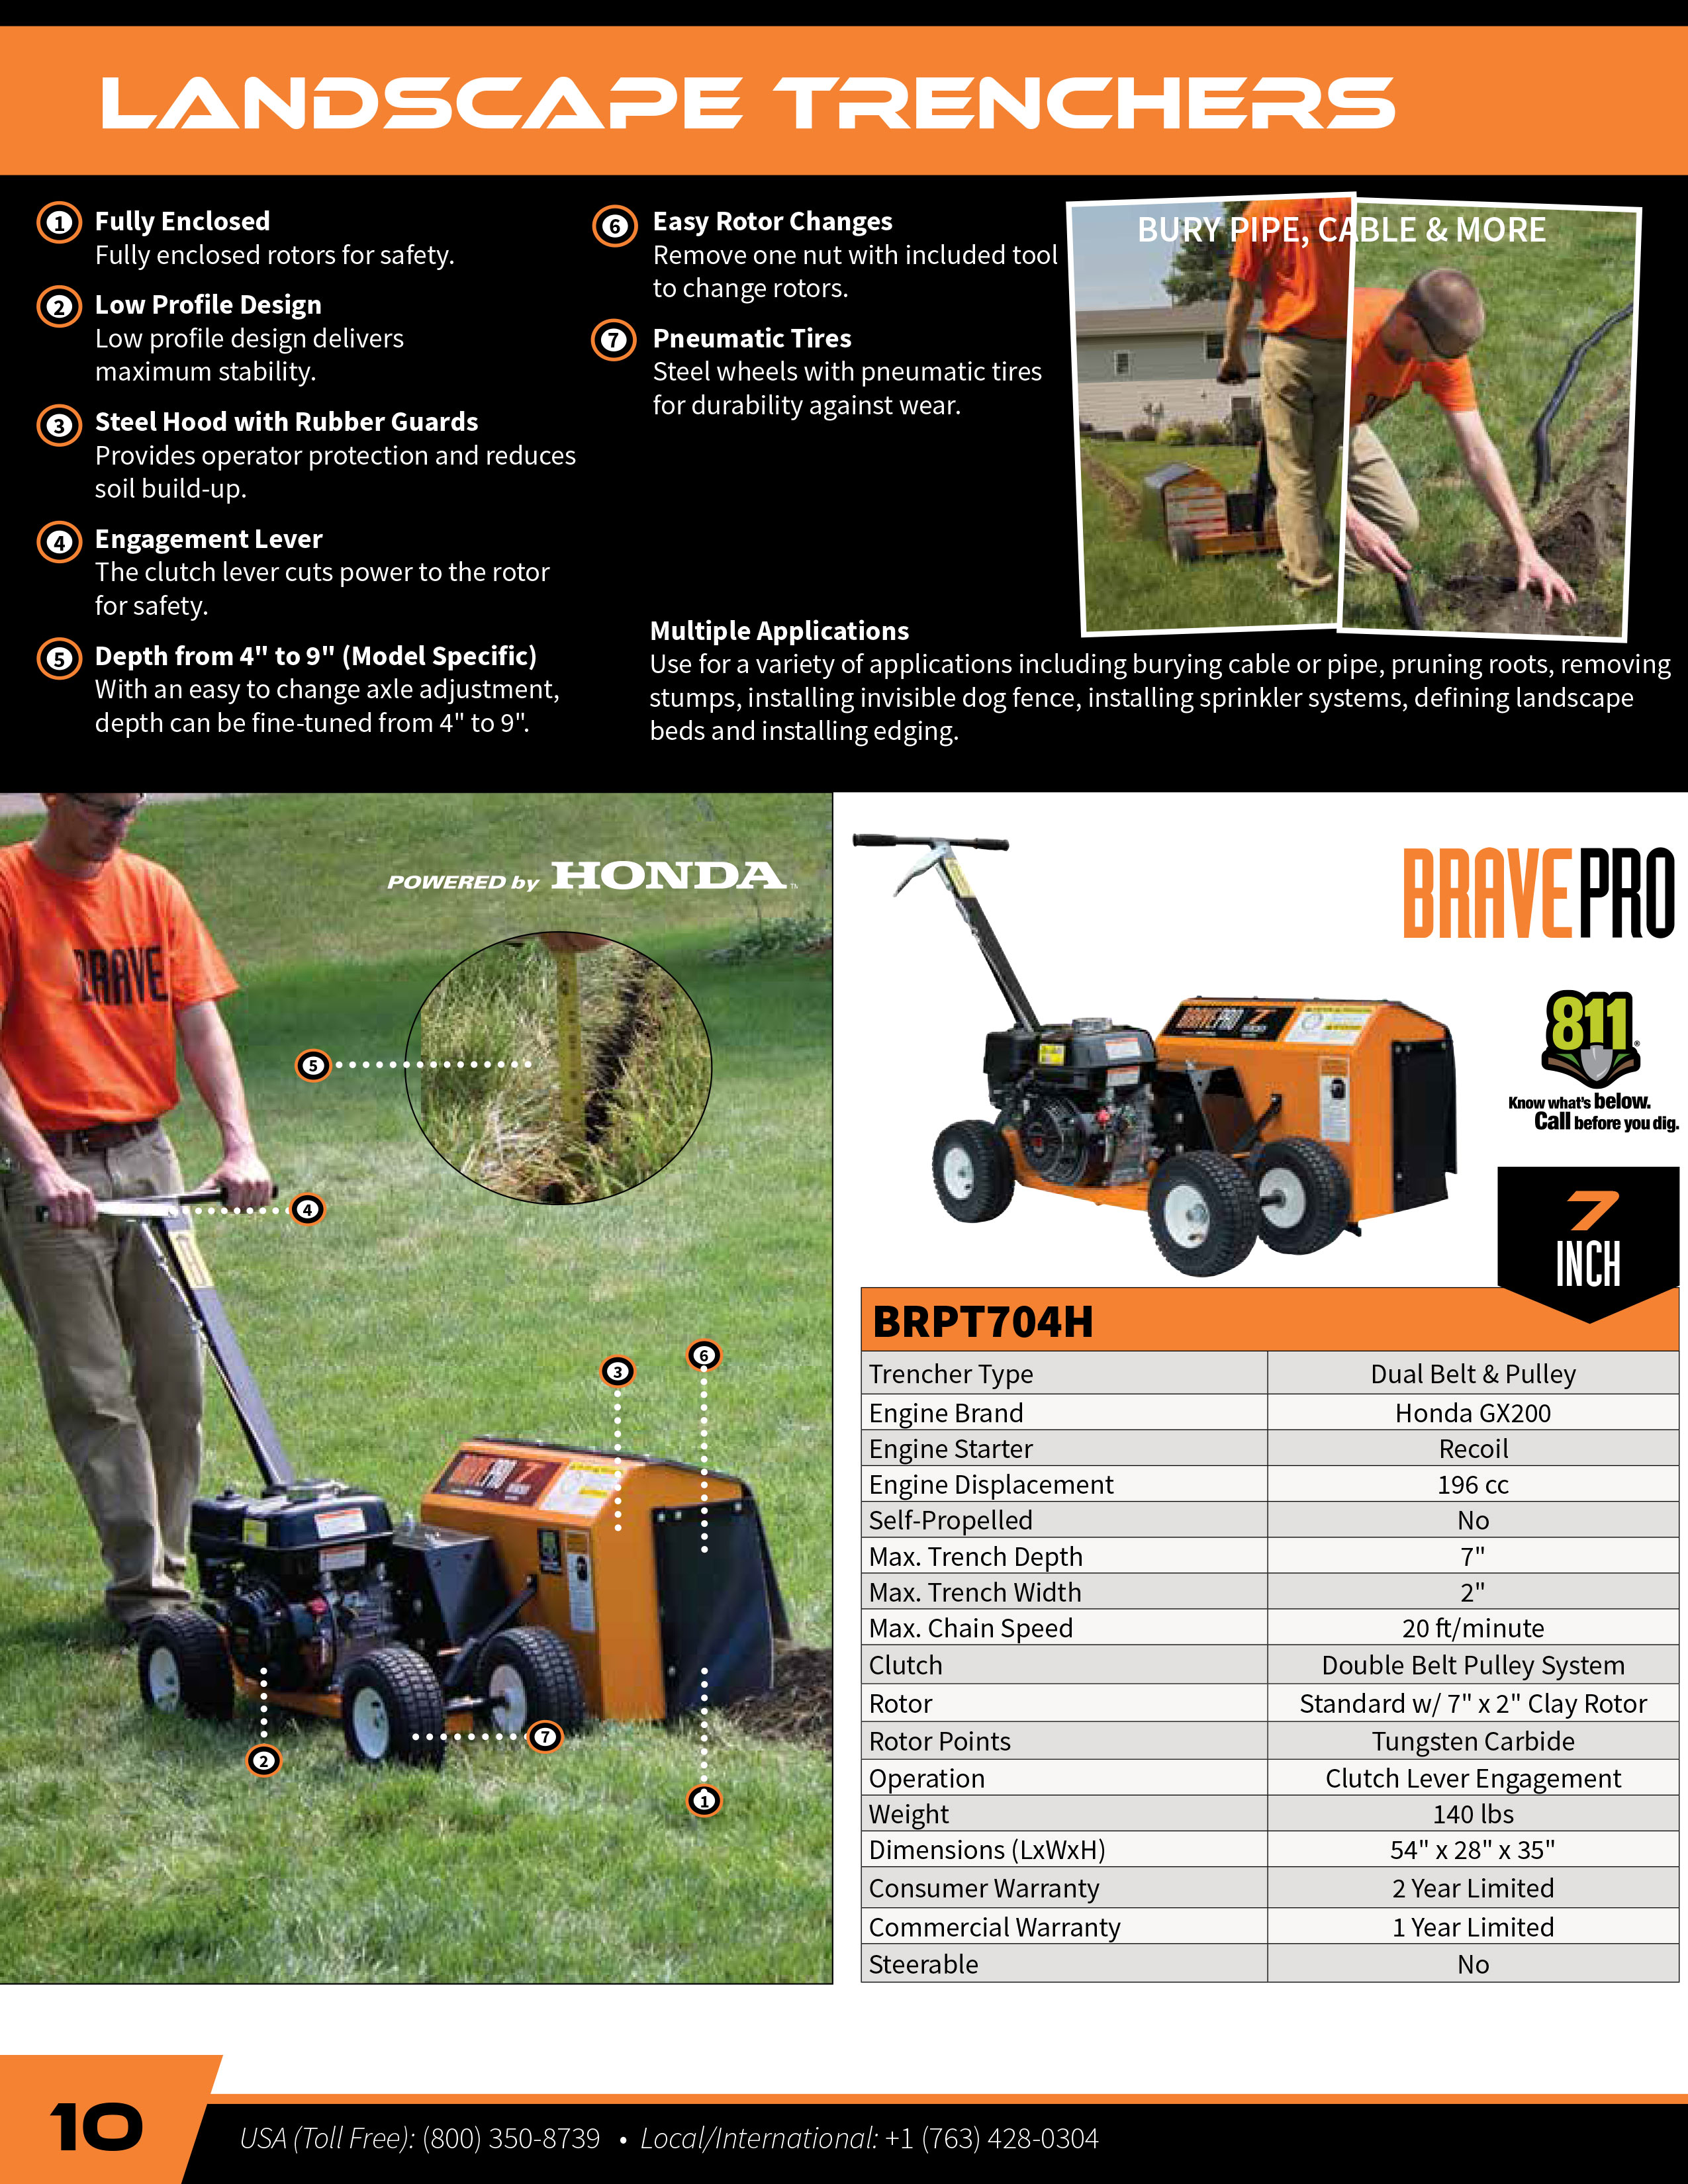 View the Brave Trencher Brochure